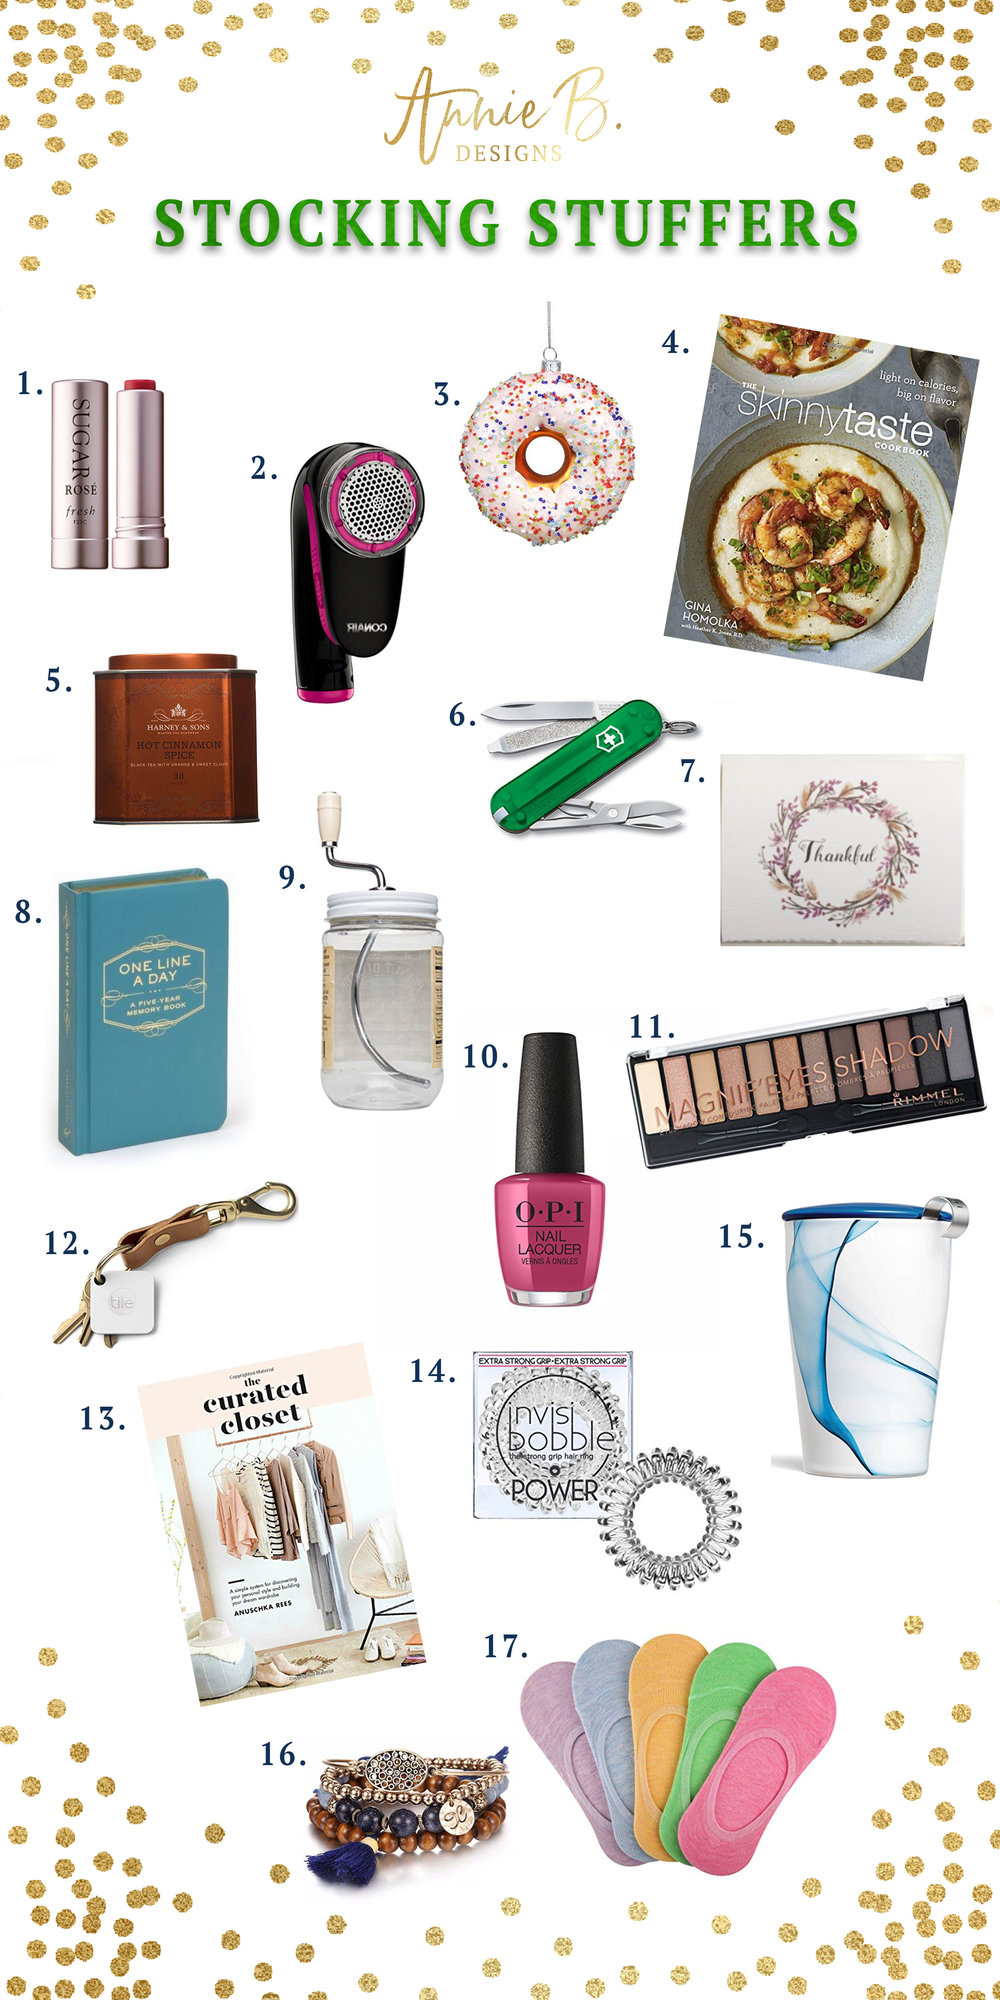 1.  Sugar Lip Chapstick  2.  Clothing Defuzzer  3.  Donut Ornament  4.  Skinny Taste Cookbook  5.  Hot Cinnamon Tea  6.  Swiss Army Pocket Knife  7.  Jane & Pearl Notecards  8.  One Line A Day Memory Book  9.  Nut Butter Mixer  10.  OPI Nail Polish  11.  Neutral Eye Shadow Pallet  12.  Tile Phone Finder  13.  Curated Closet  14.  Invisibobble Hair Ties  15.  Blue Marble Travel Mug  16.  Stackable Bracelets  17.  Bootie Socks